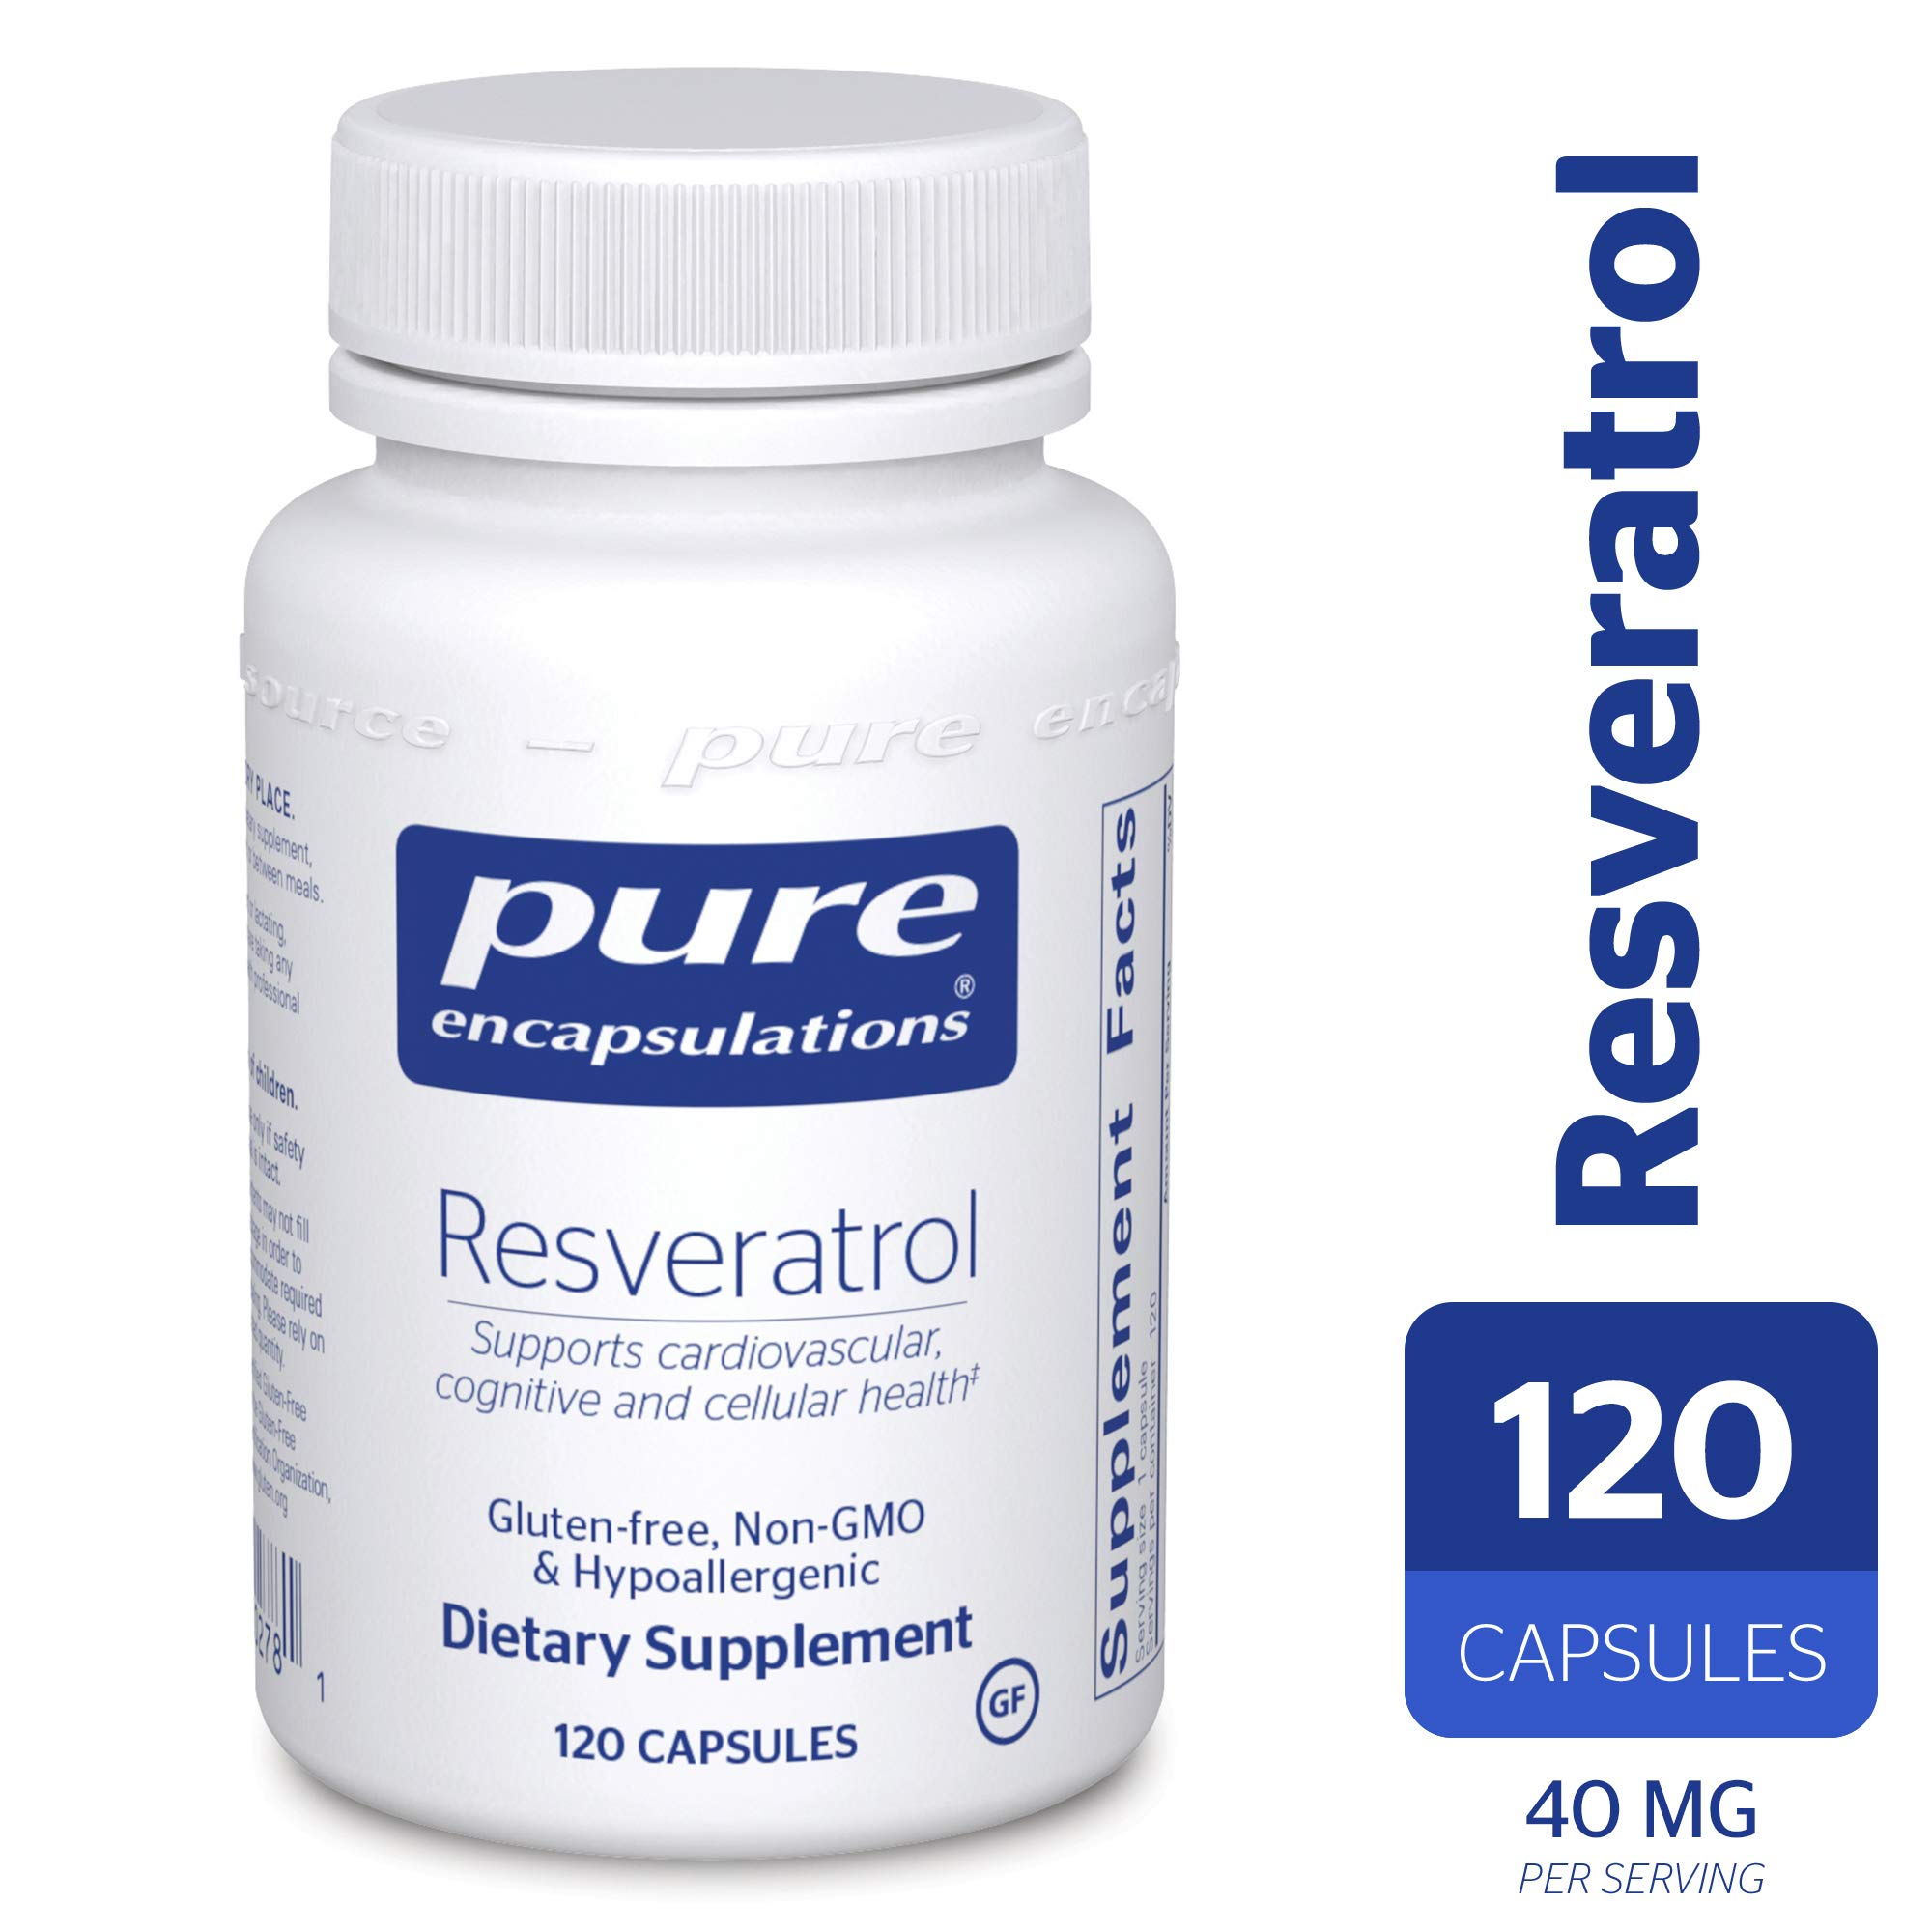 Pure Encapsulations - Resveratrol - Hypoallergenic Dietary Supplement for Antioxidant and Cardiovascular Support* - 120 Capsules